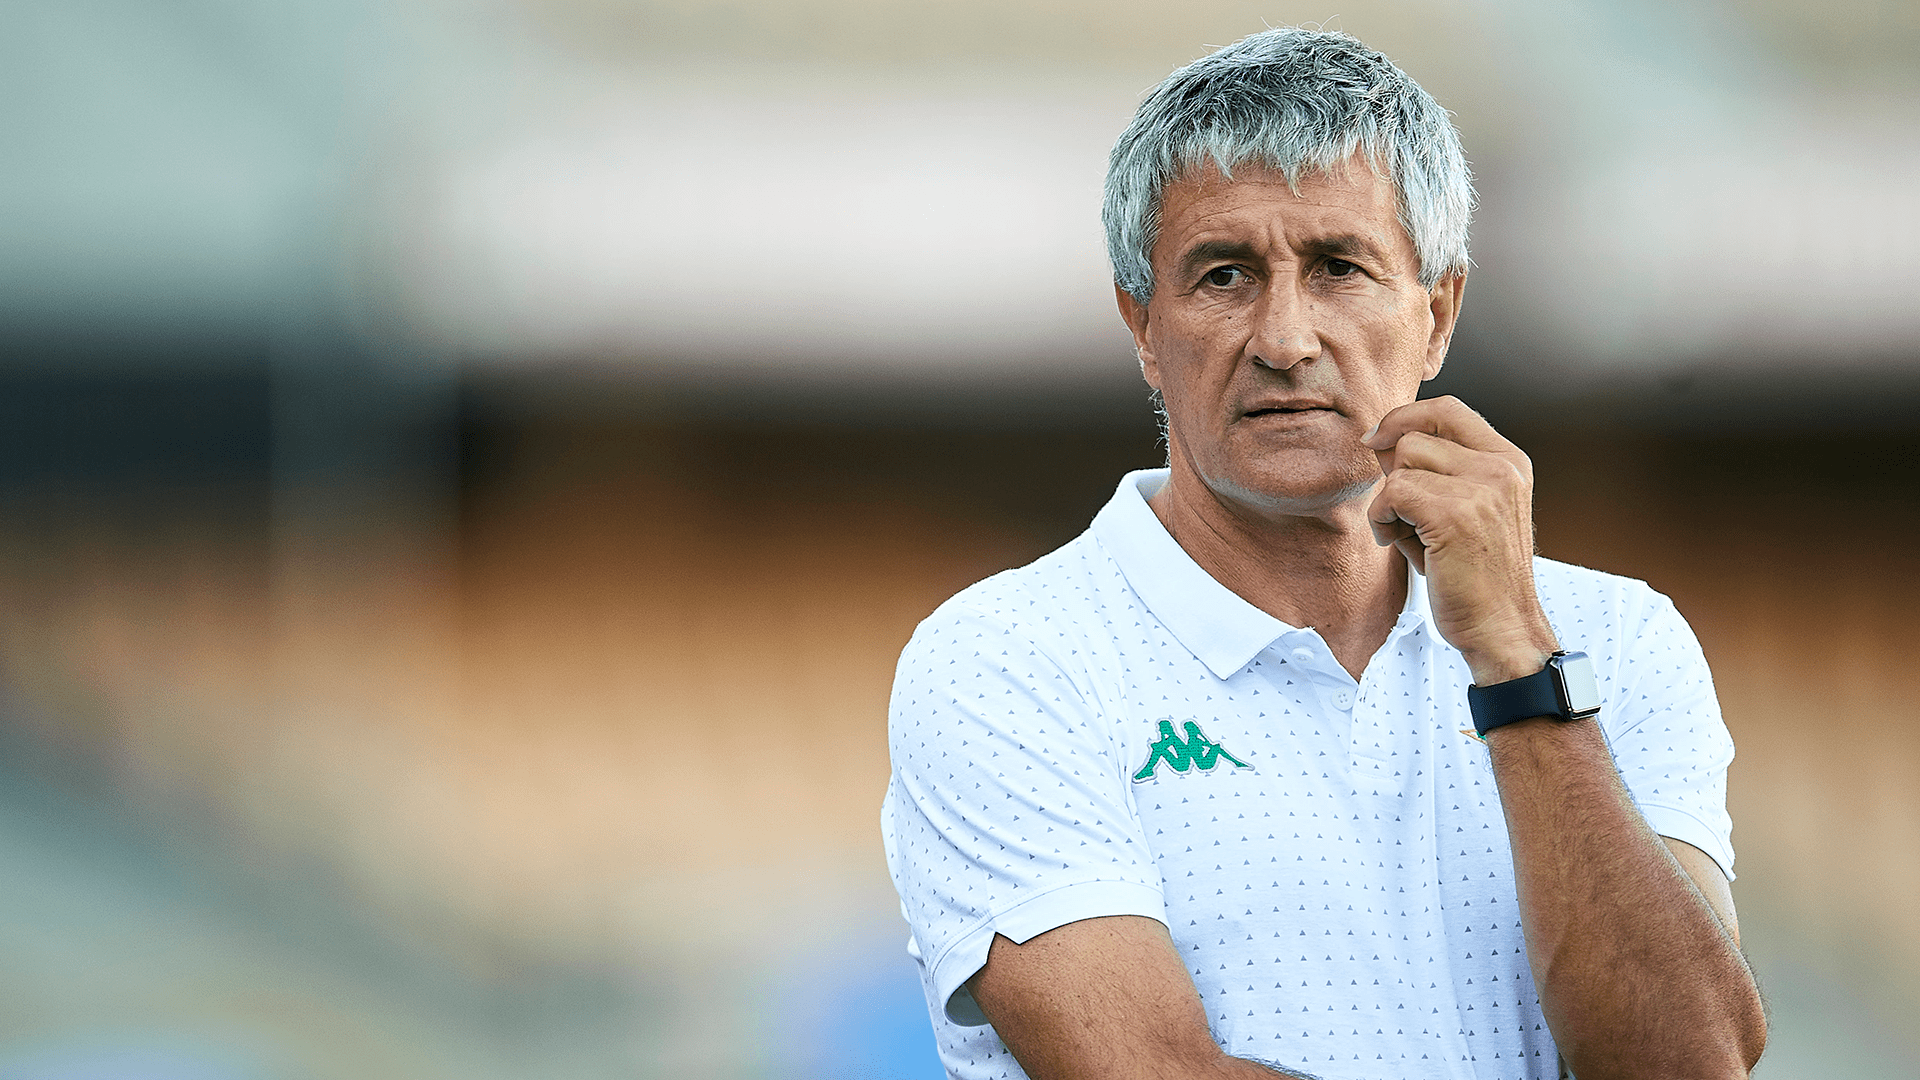 Barcelona S New Coach Who Is Quique Setien The Cruyff